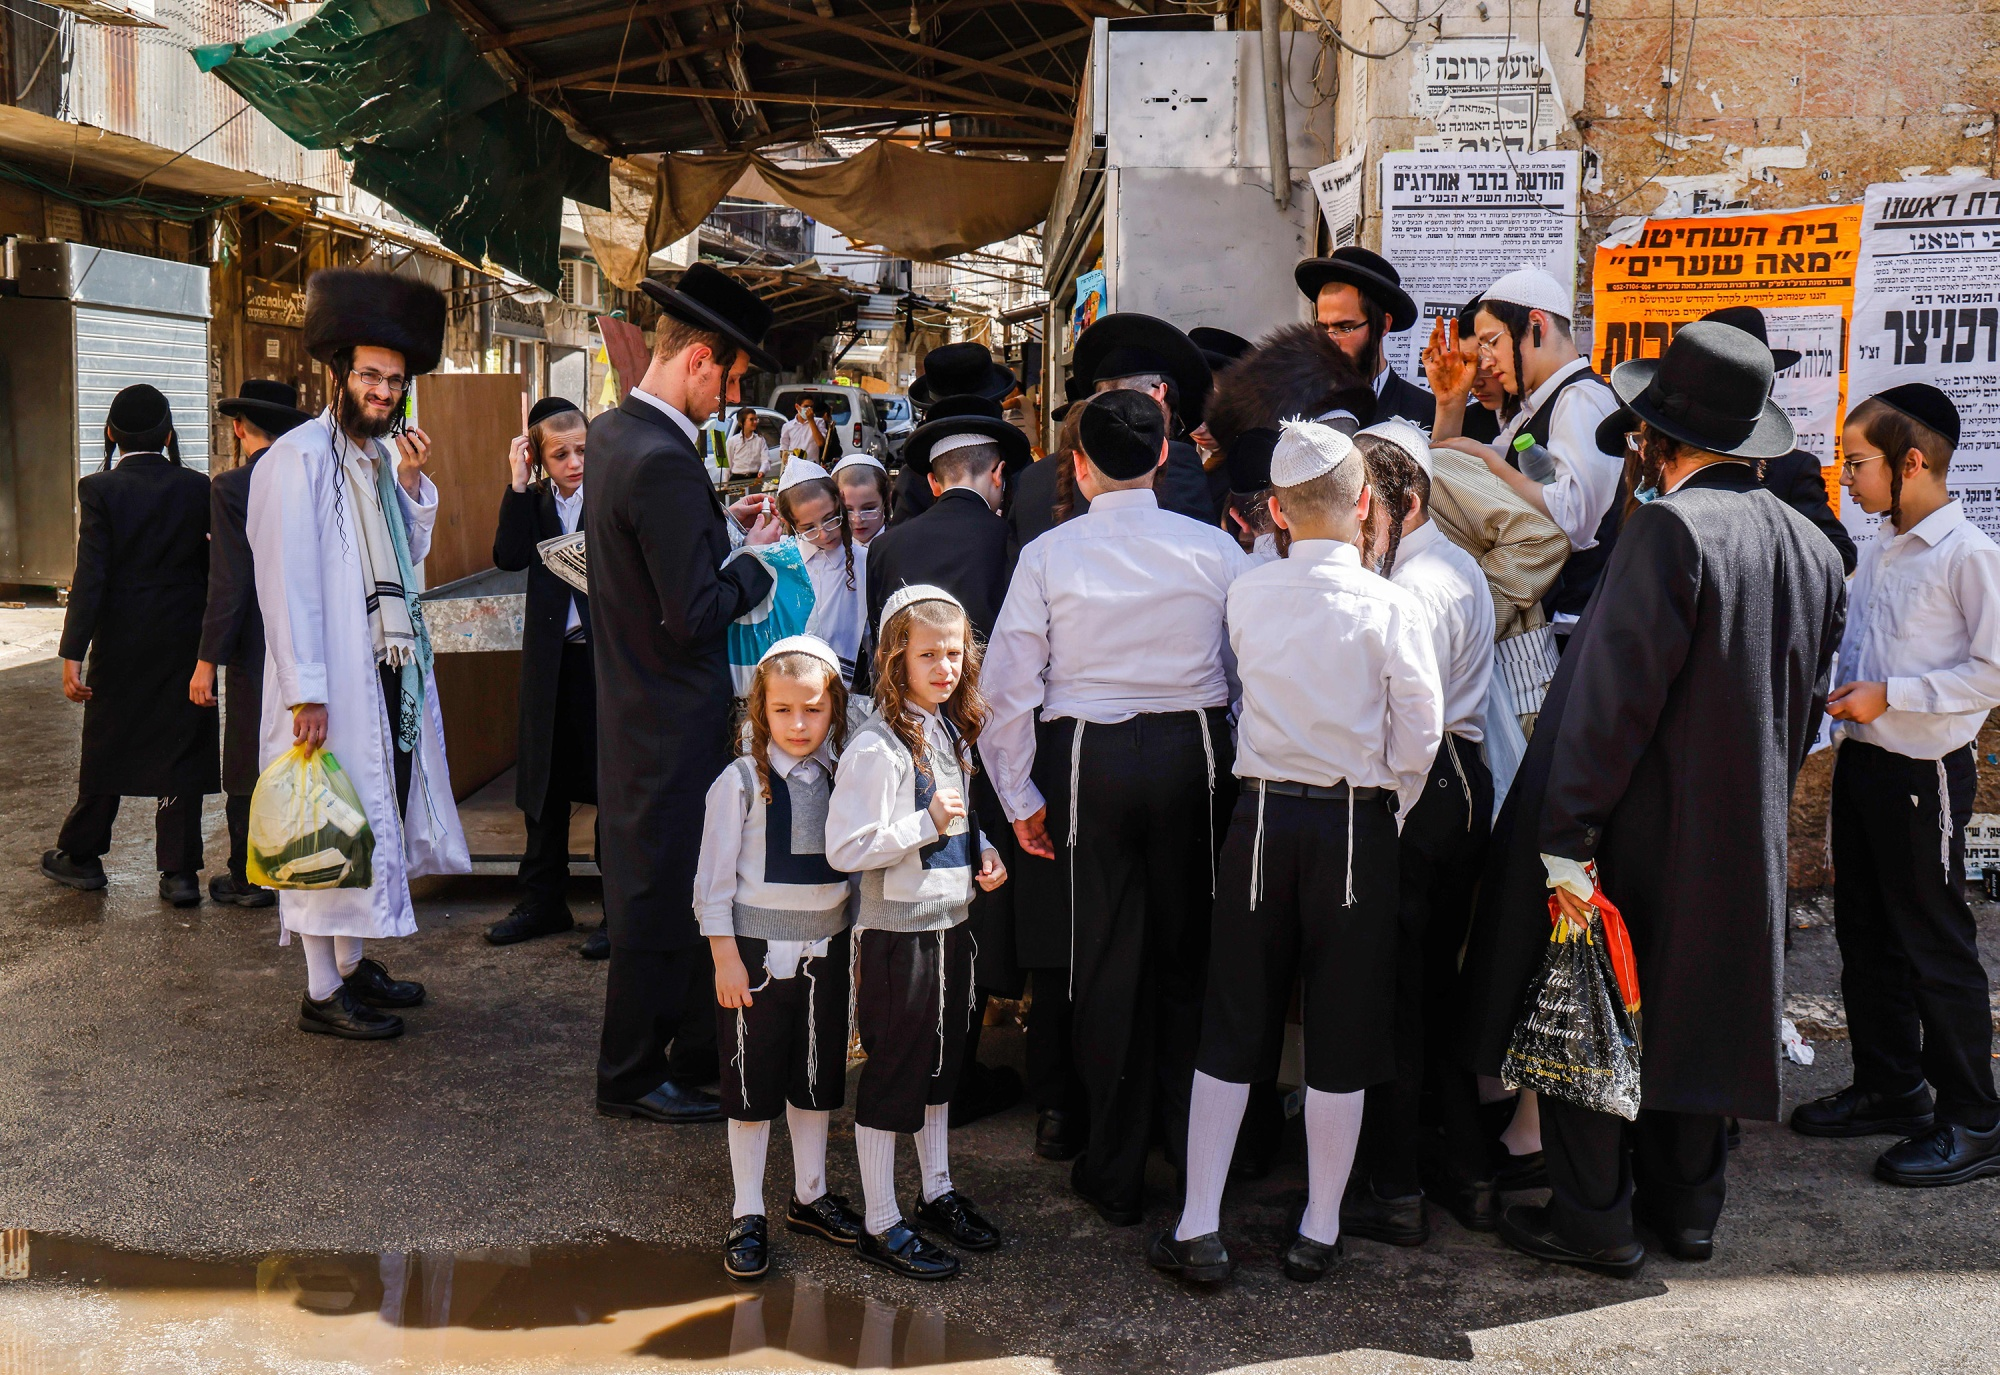 Ultra-Orthodox Jewish men and boys stand along a street corner in the Mea Shearim neighborhood of Jerusalem.